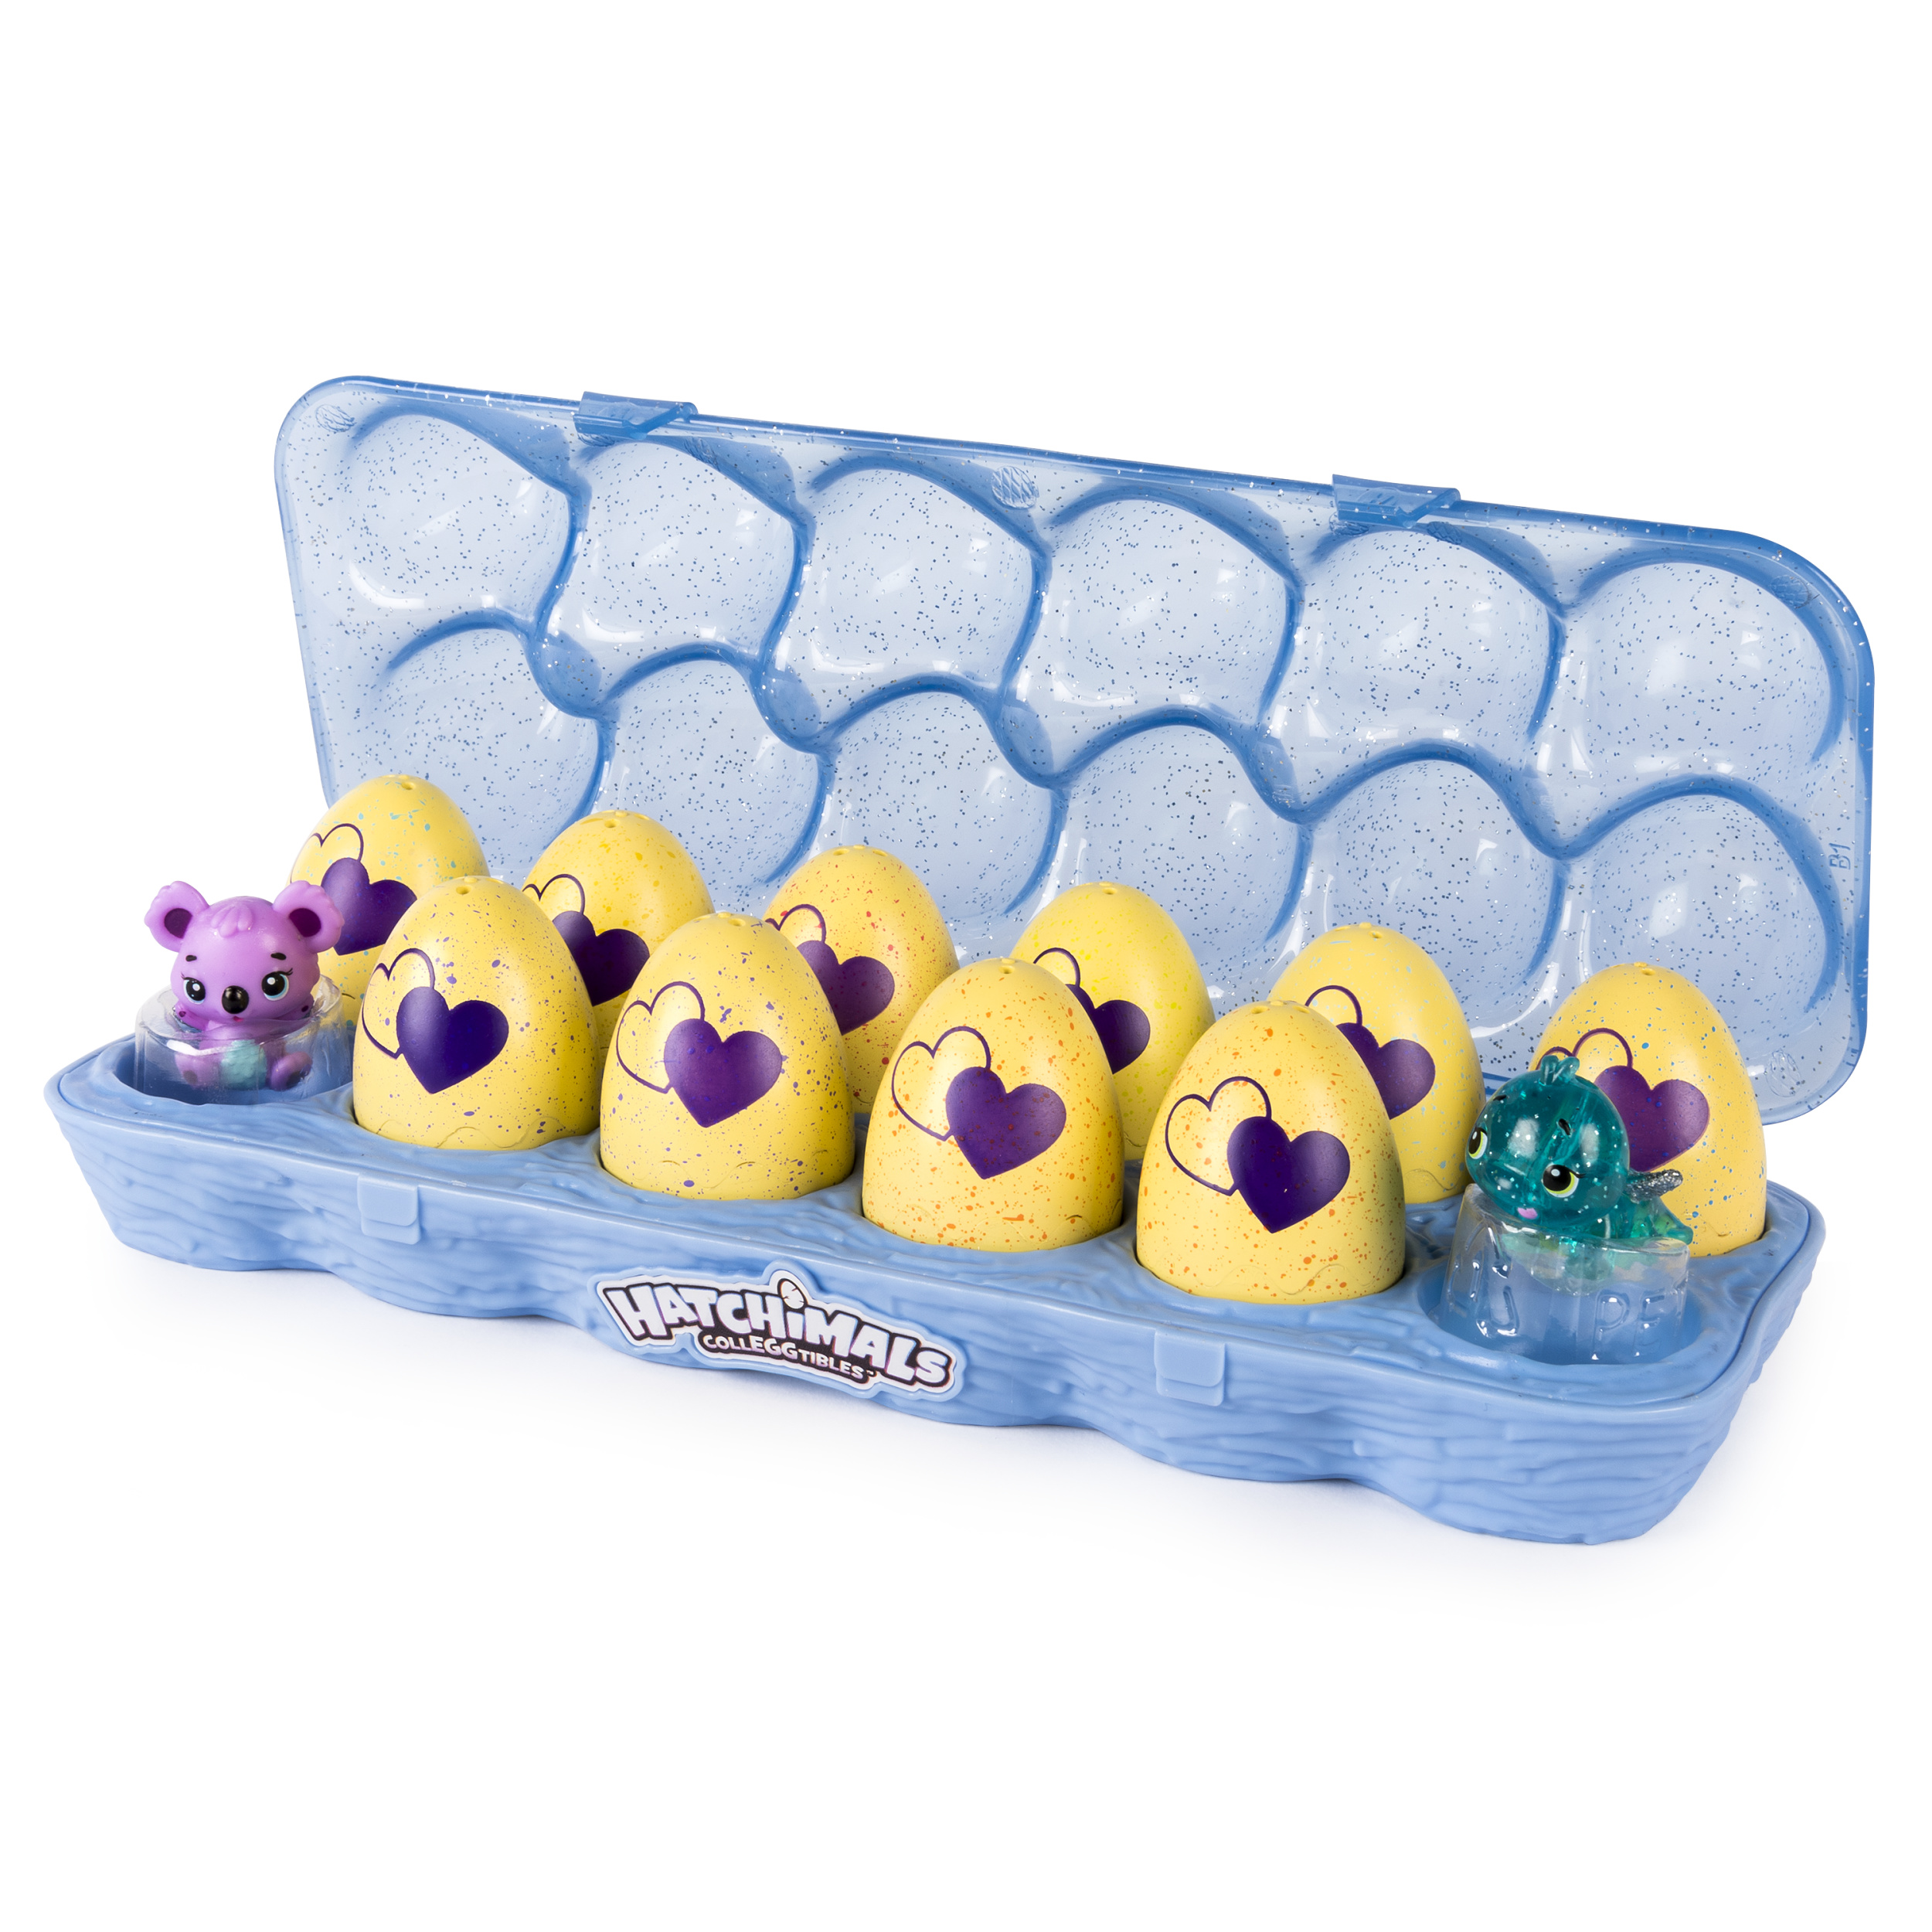 Hatchimals CollEGGtibles Season 3 ‐ 12‐Pack Egg Carton (Styles & Colors May Vary) by Spin Master